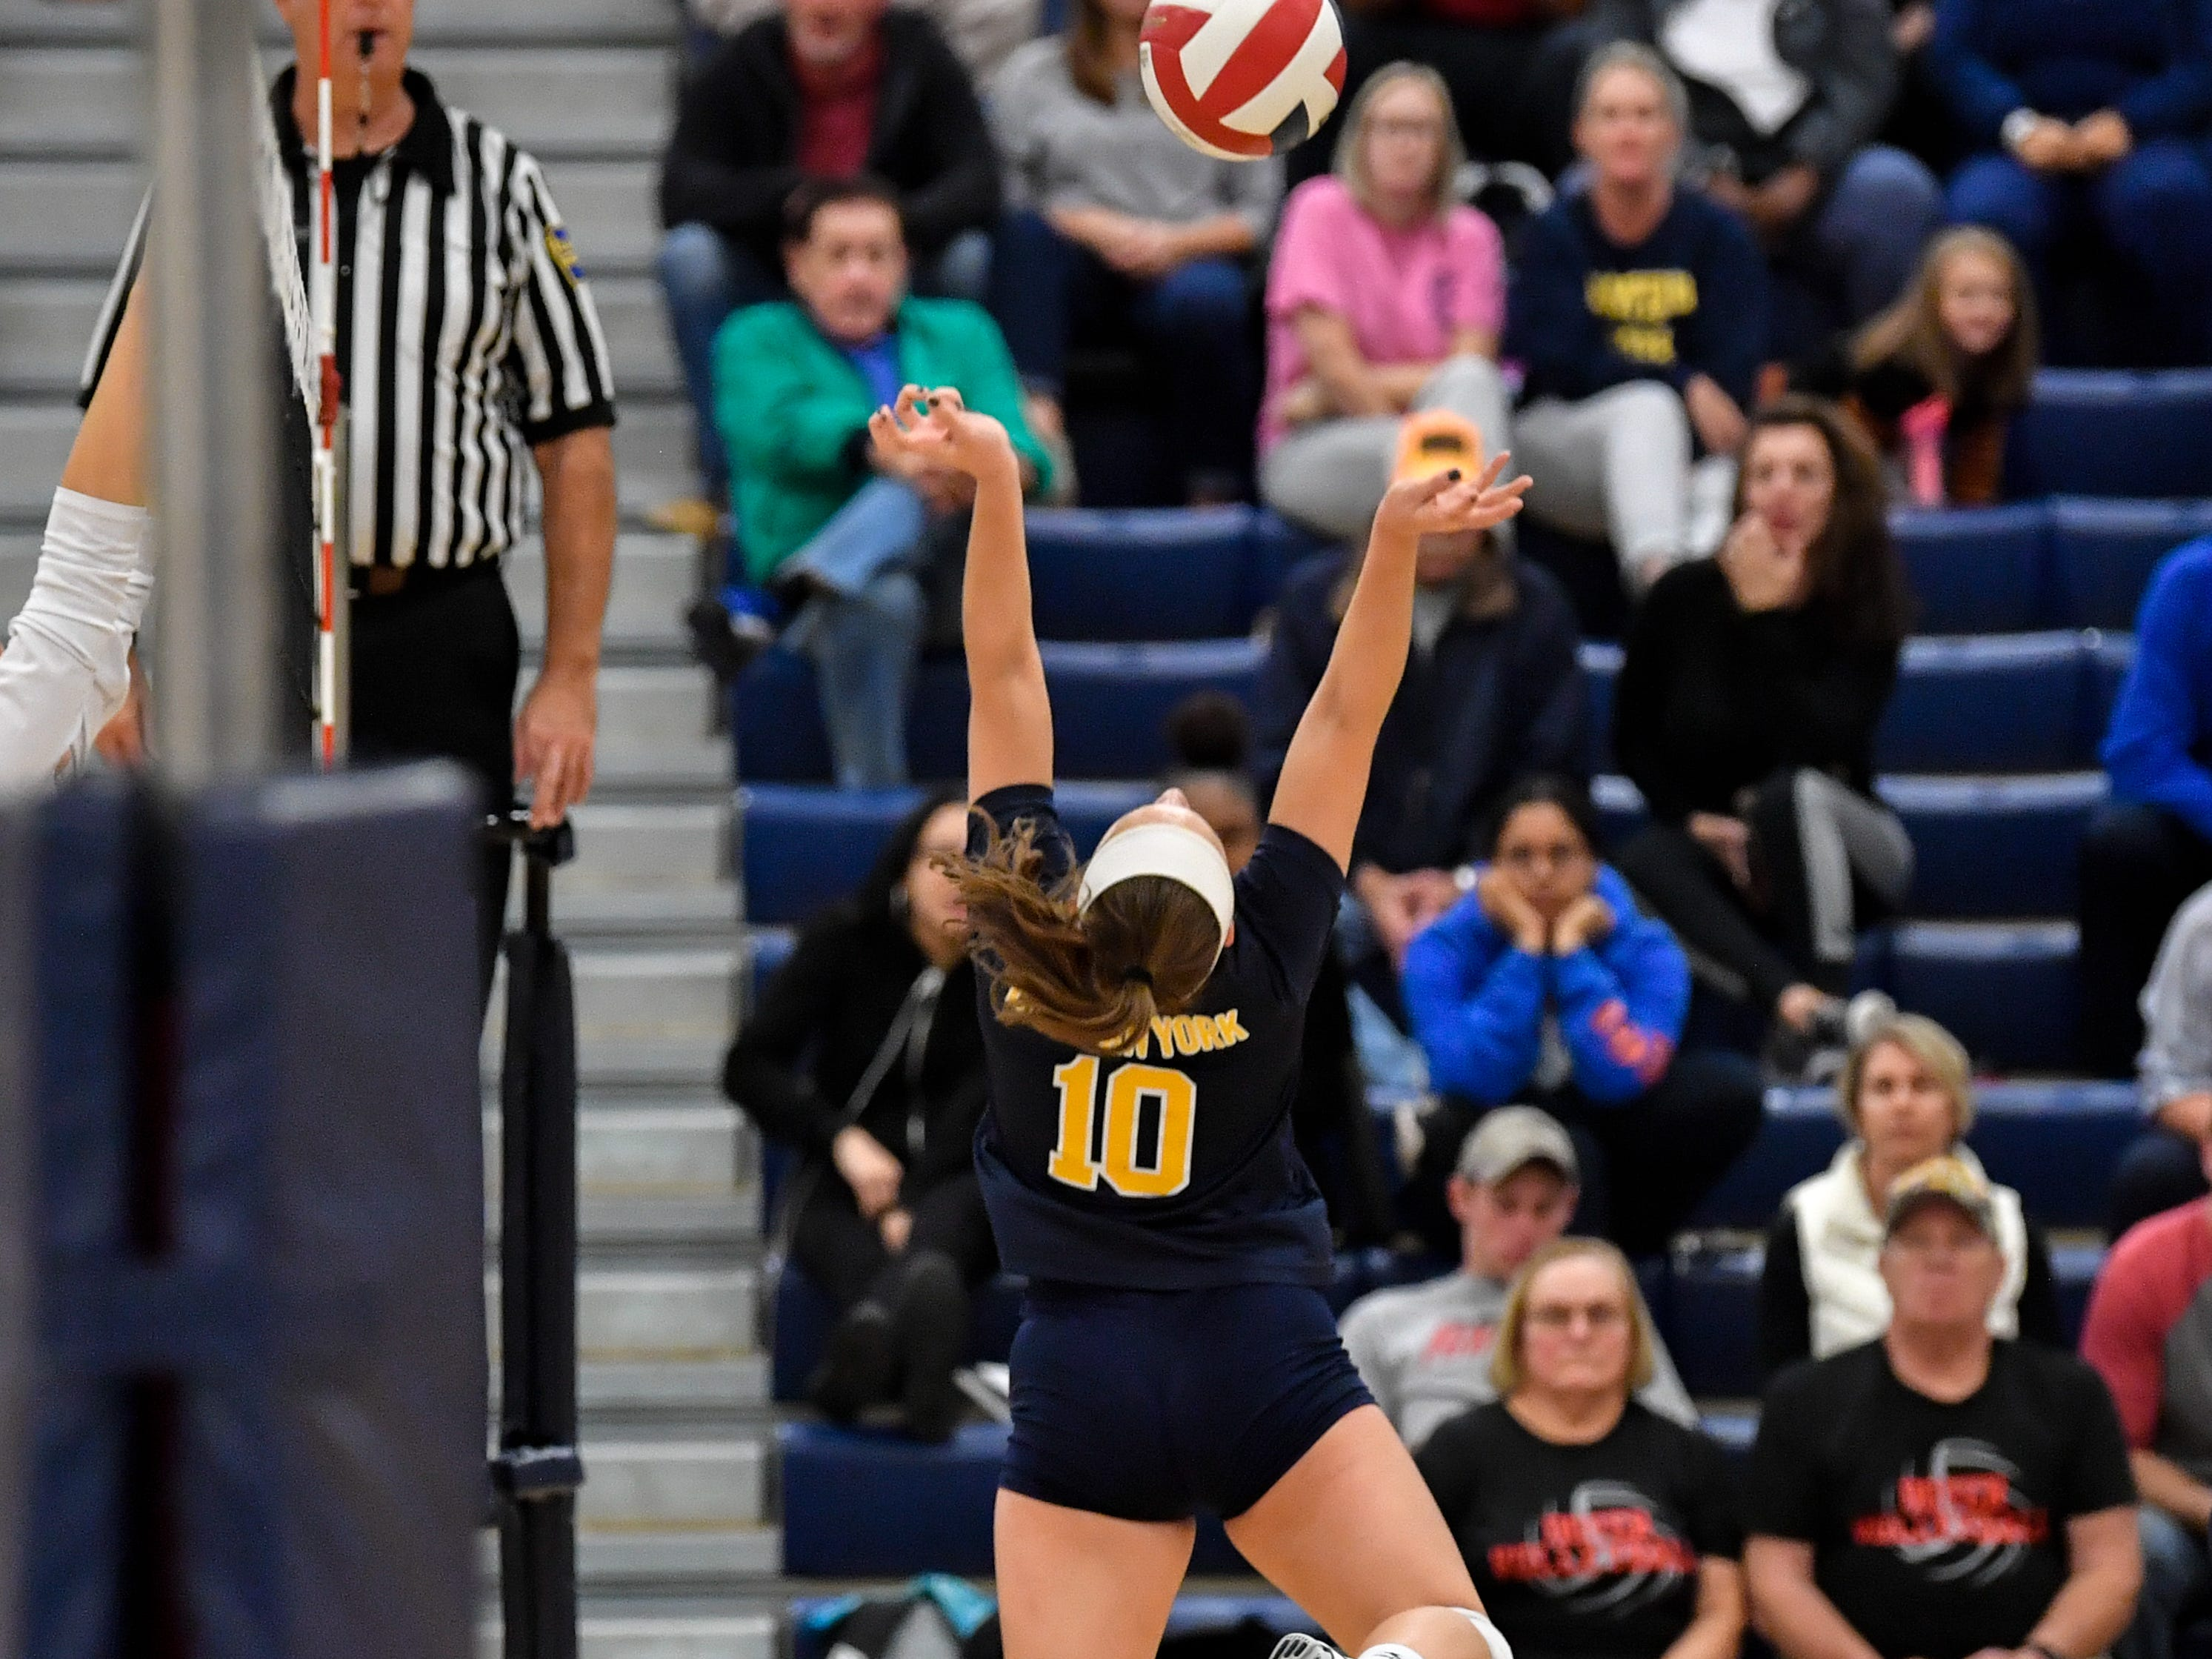 Katie Lehman (10) sets the ball during the District 3 Class 3A girls' volleyball quarterfinals between West York and Eastern York at West York High School, October 30, 2018. The Bulldogs defeated the Golden Knights 3-0.